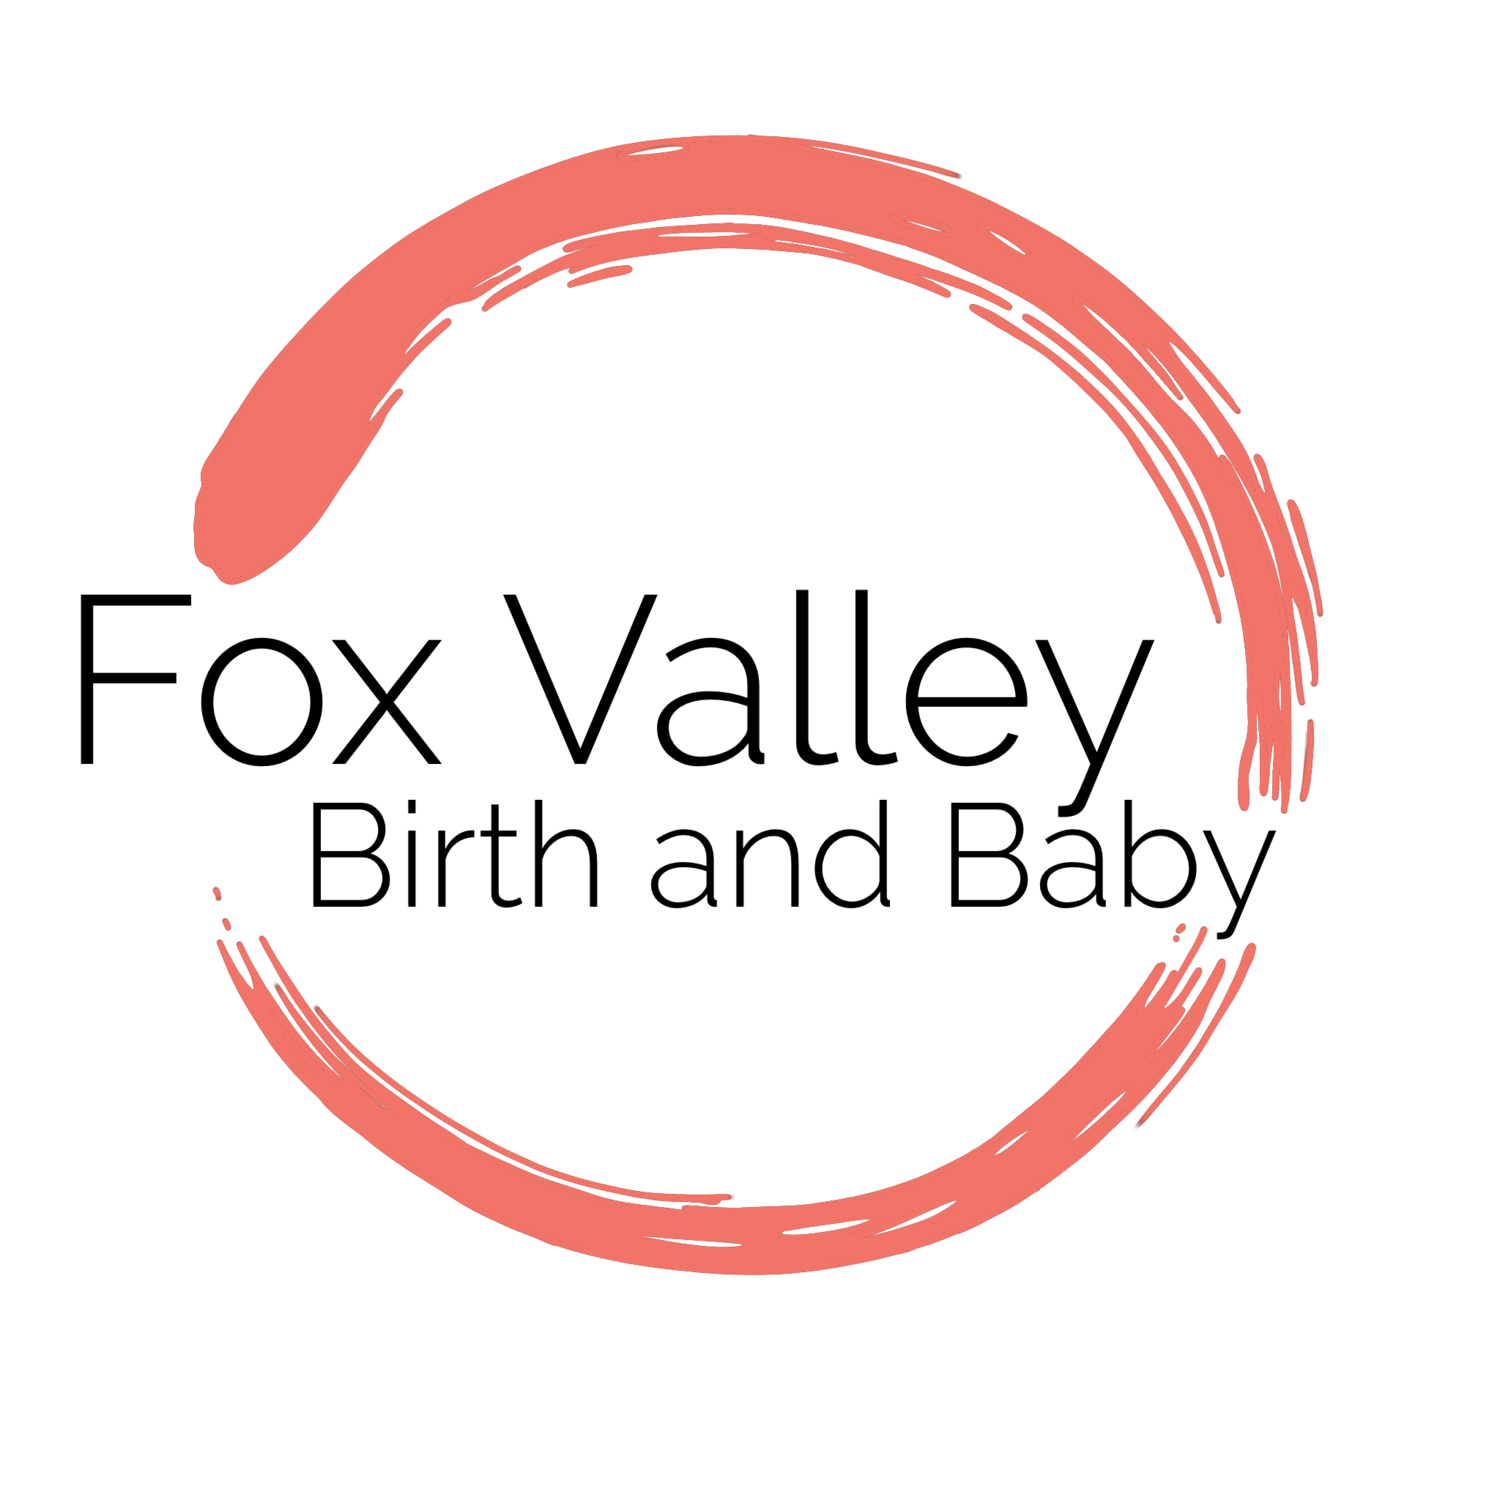 Fox Valley Birth and Baby | Green Bay, Appleton, and Oshkosh WI Doula and Birth Photography